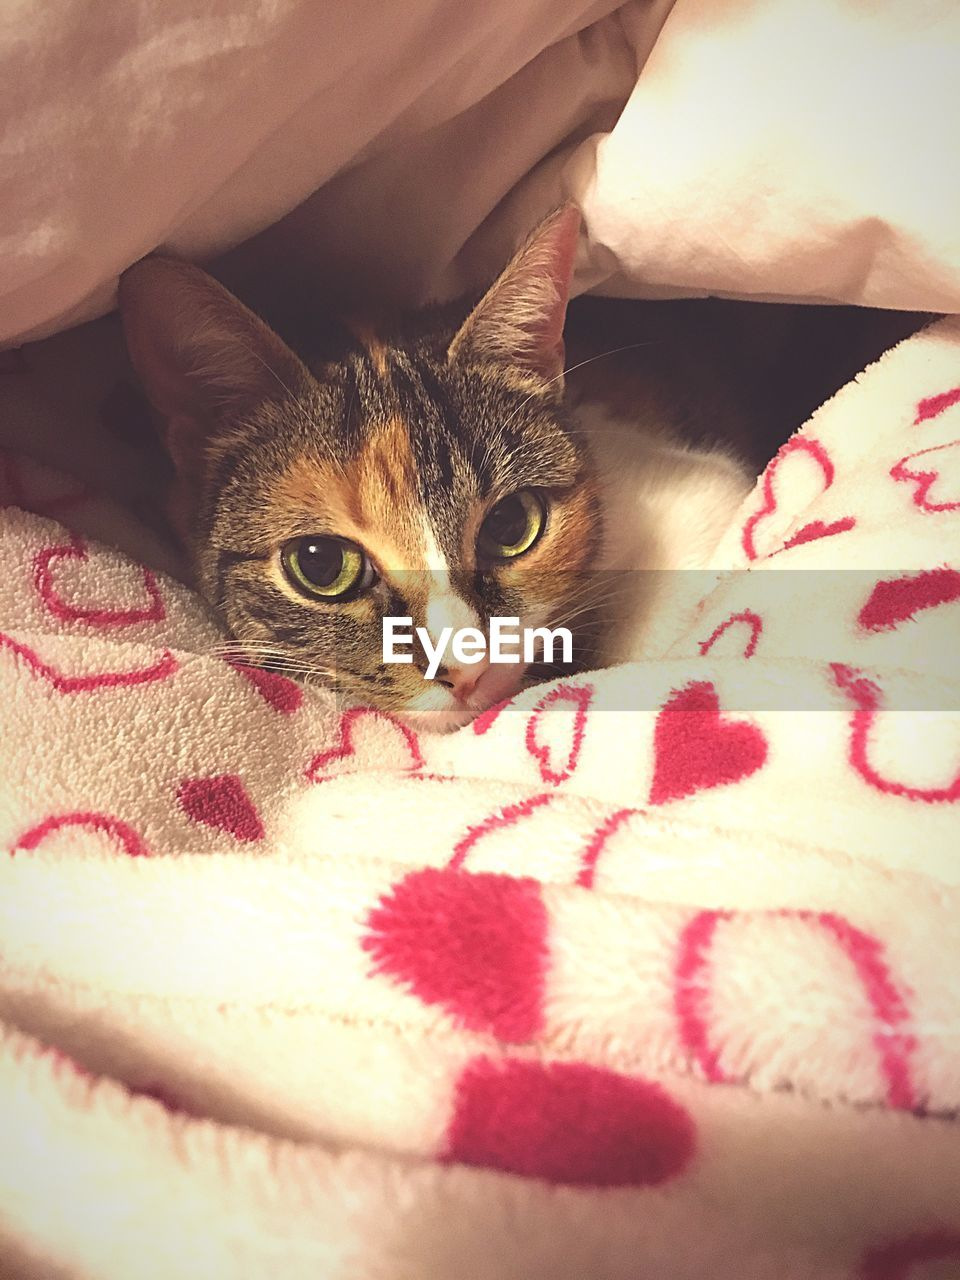 pets, domestic animals, domestic, cat, domestic cat, mammal, animal themes, one animal, animal, vertebrate, feline, bed, furniture, indoors, relaxation, looking at camera, close-up, portrait, blanket, no people, whisker, animal head, animal eye